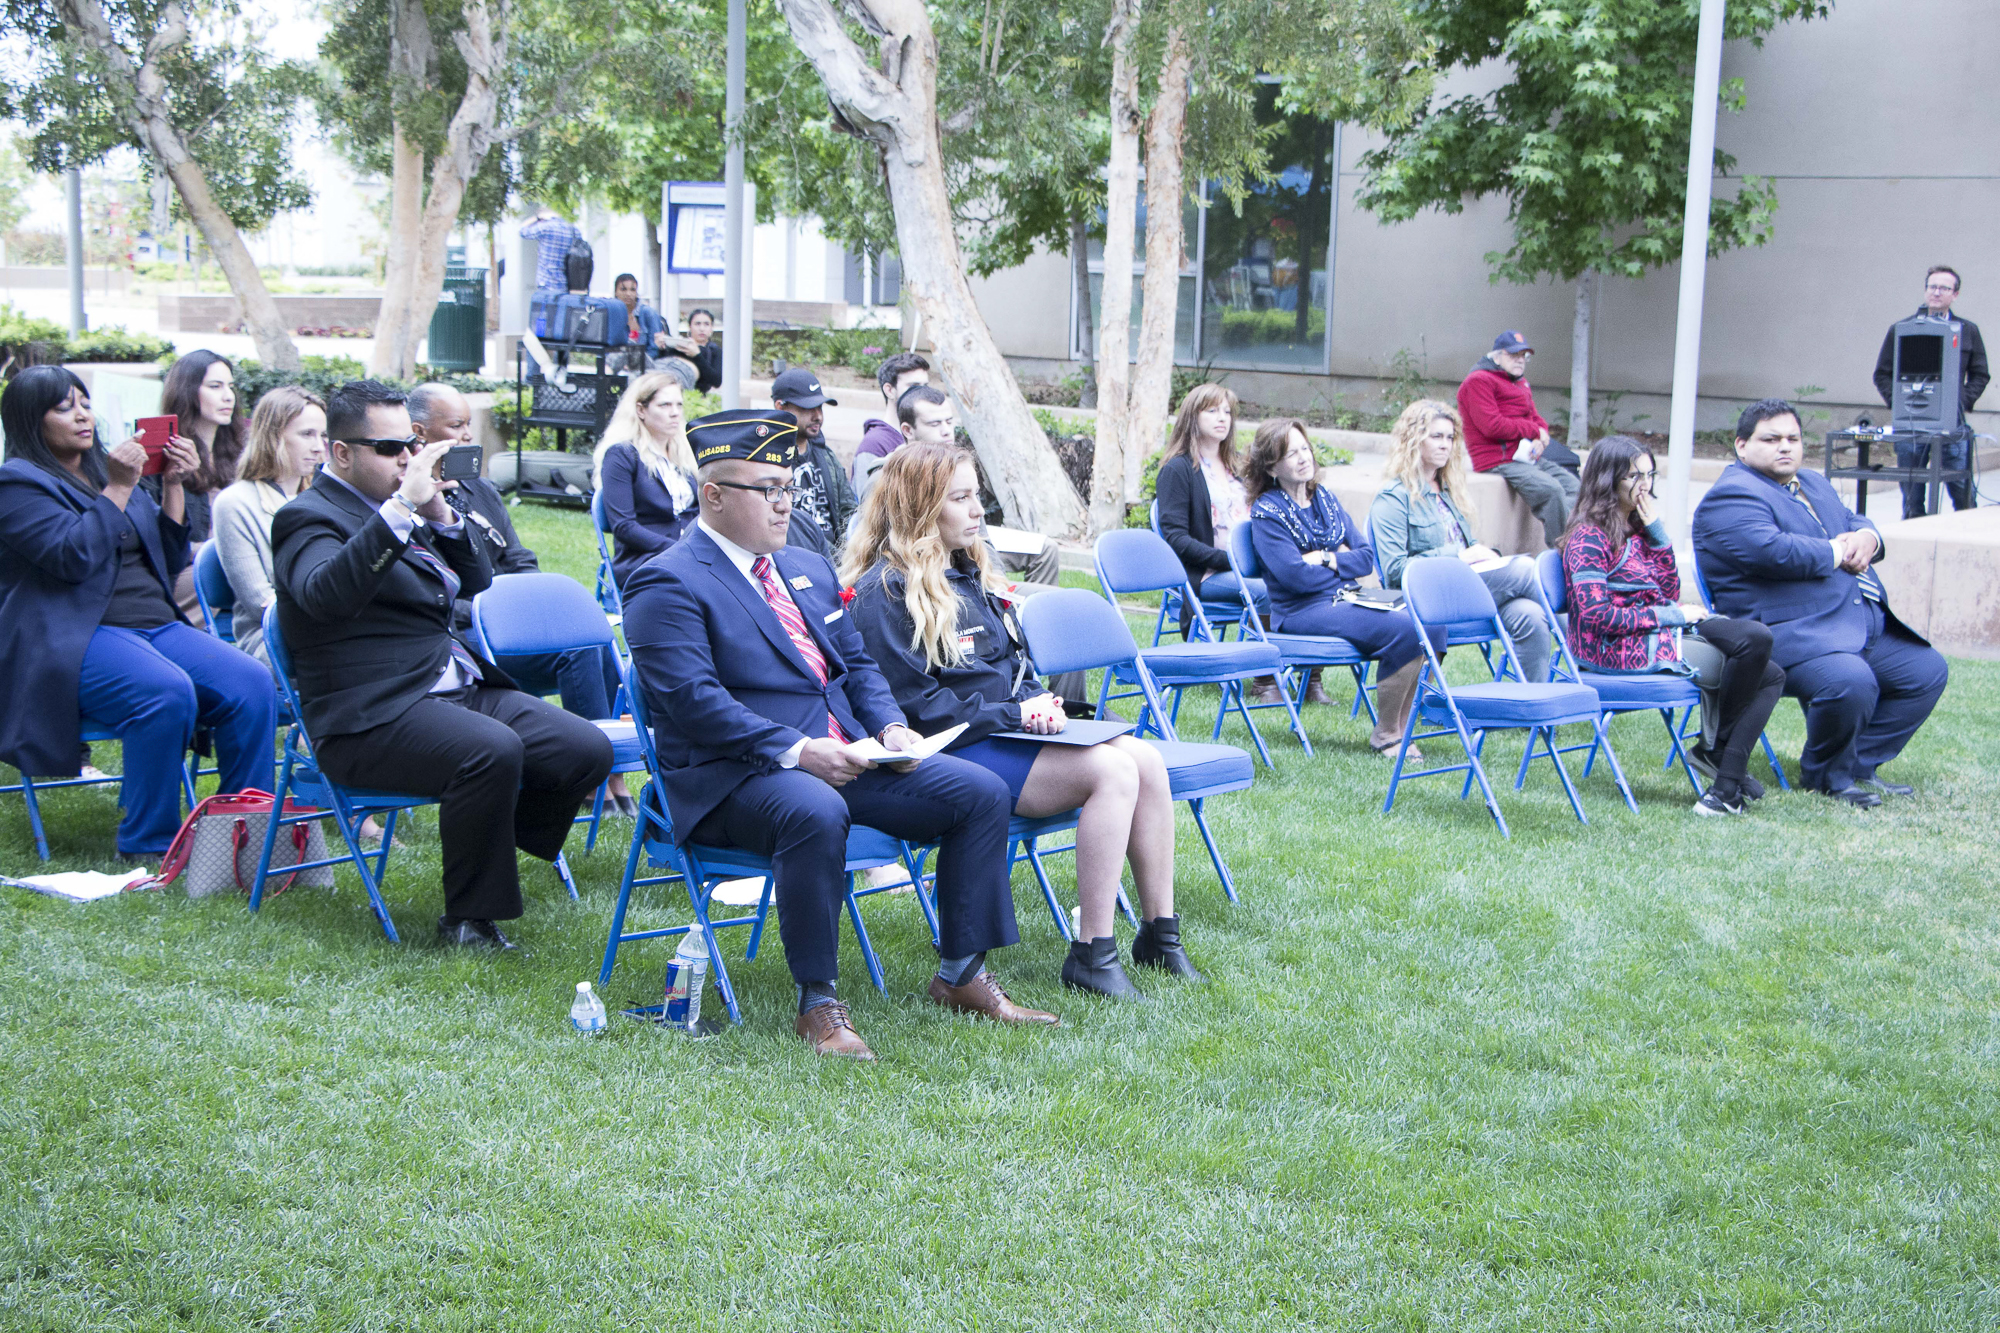 A small number of people attended Santa Monica College's Memorial Day Commemoration to the disappointment of several of those who spoke at the event on Thursday, May 25, 2018 in Santa Monica, California (Wilson Gomez/Corsair Photo)